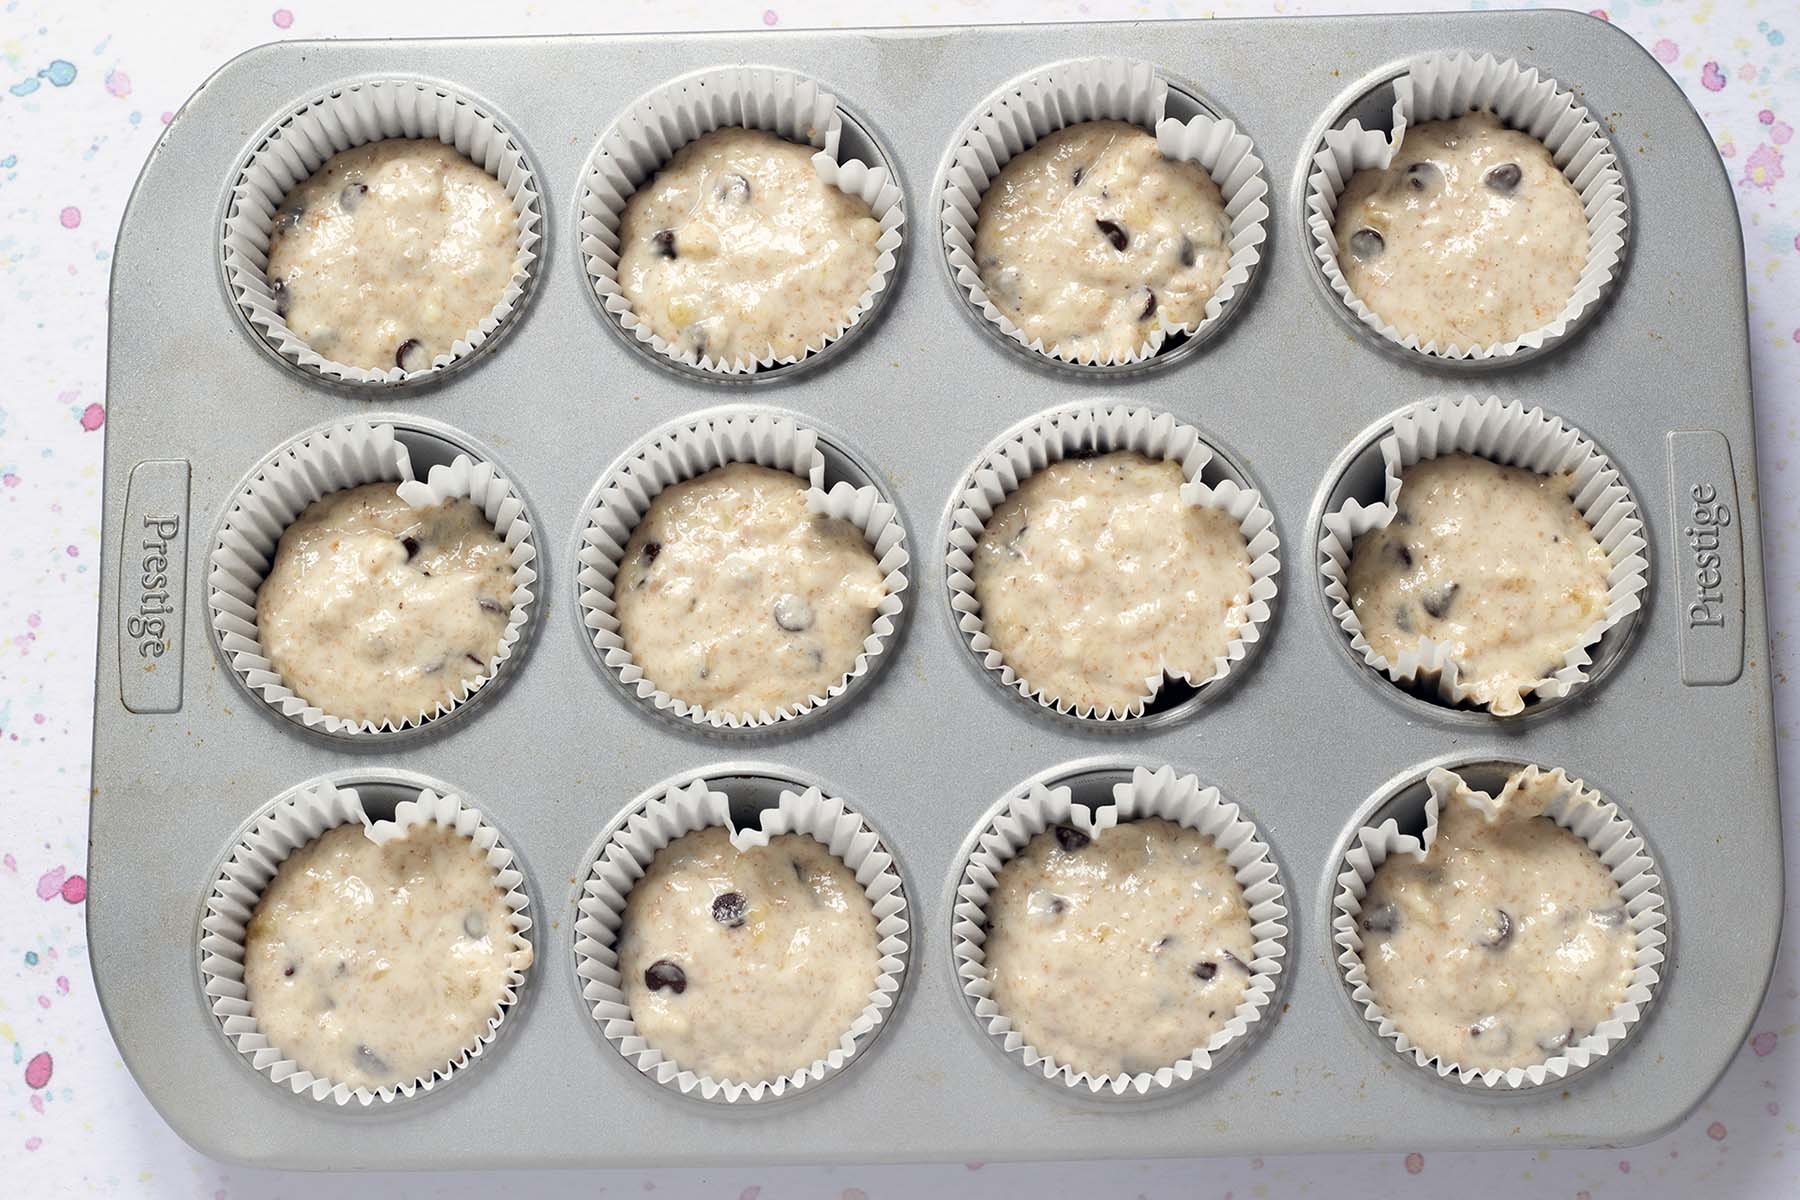 unbaked muffins in cases